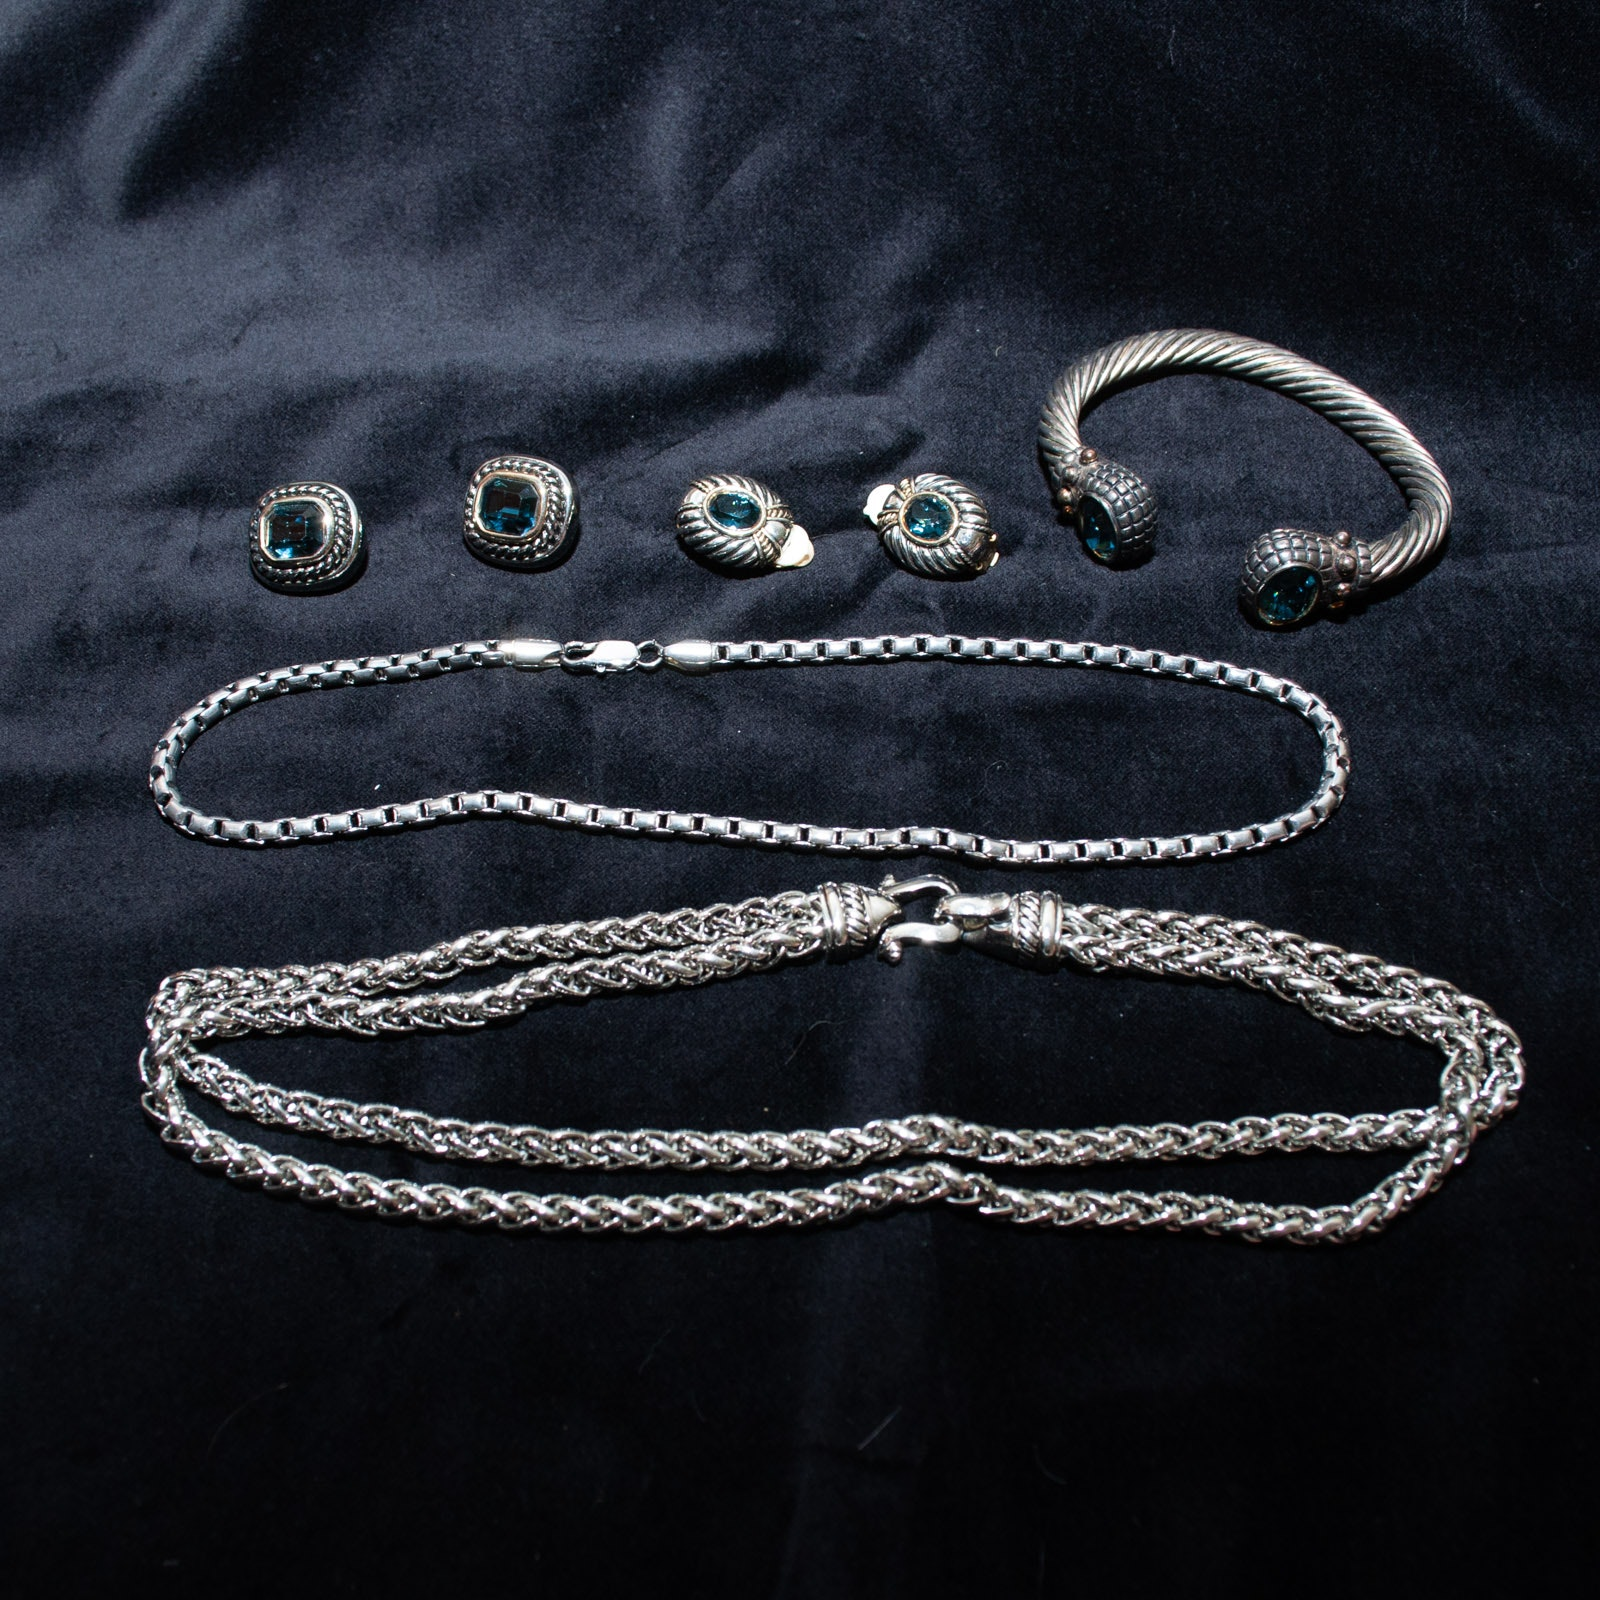 Silver and Gold Tone Cable Jewelry with Blue Glass Stones